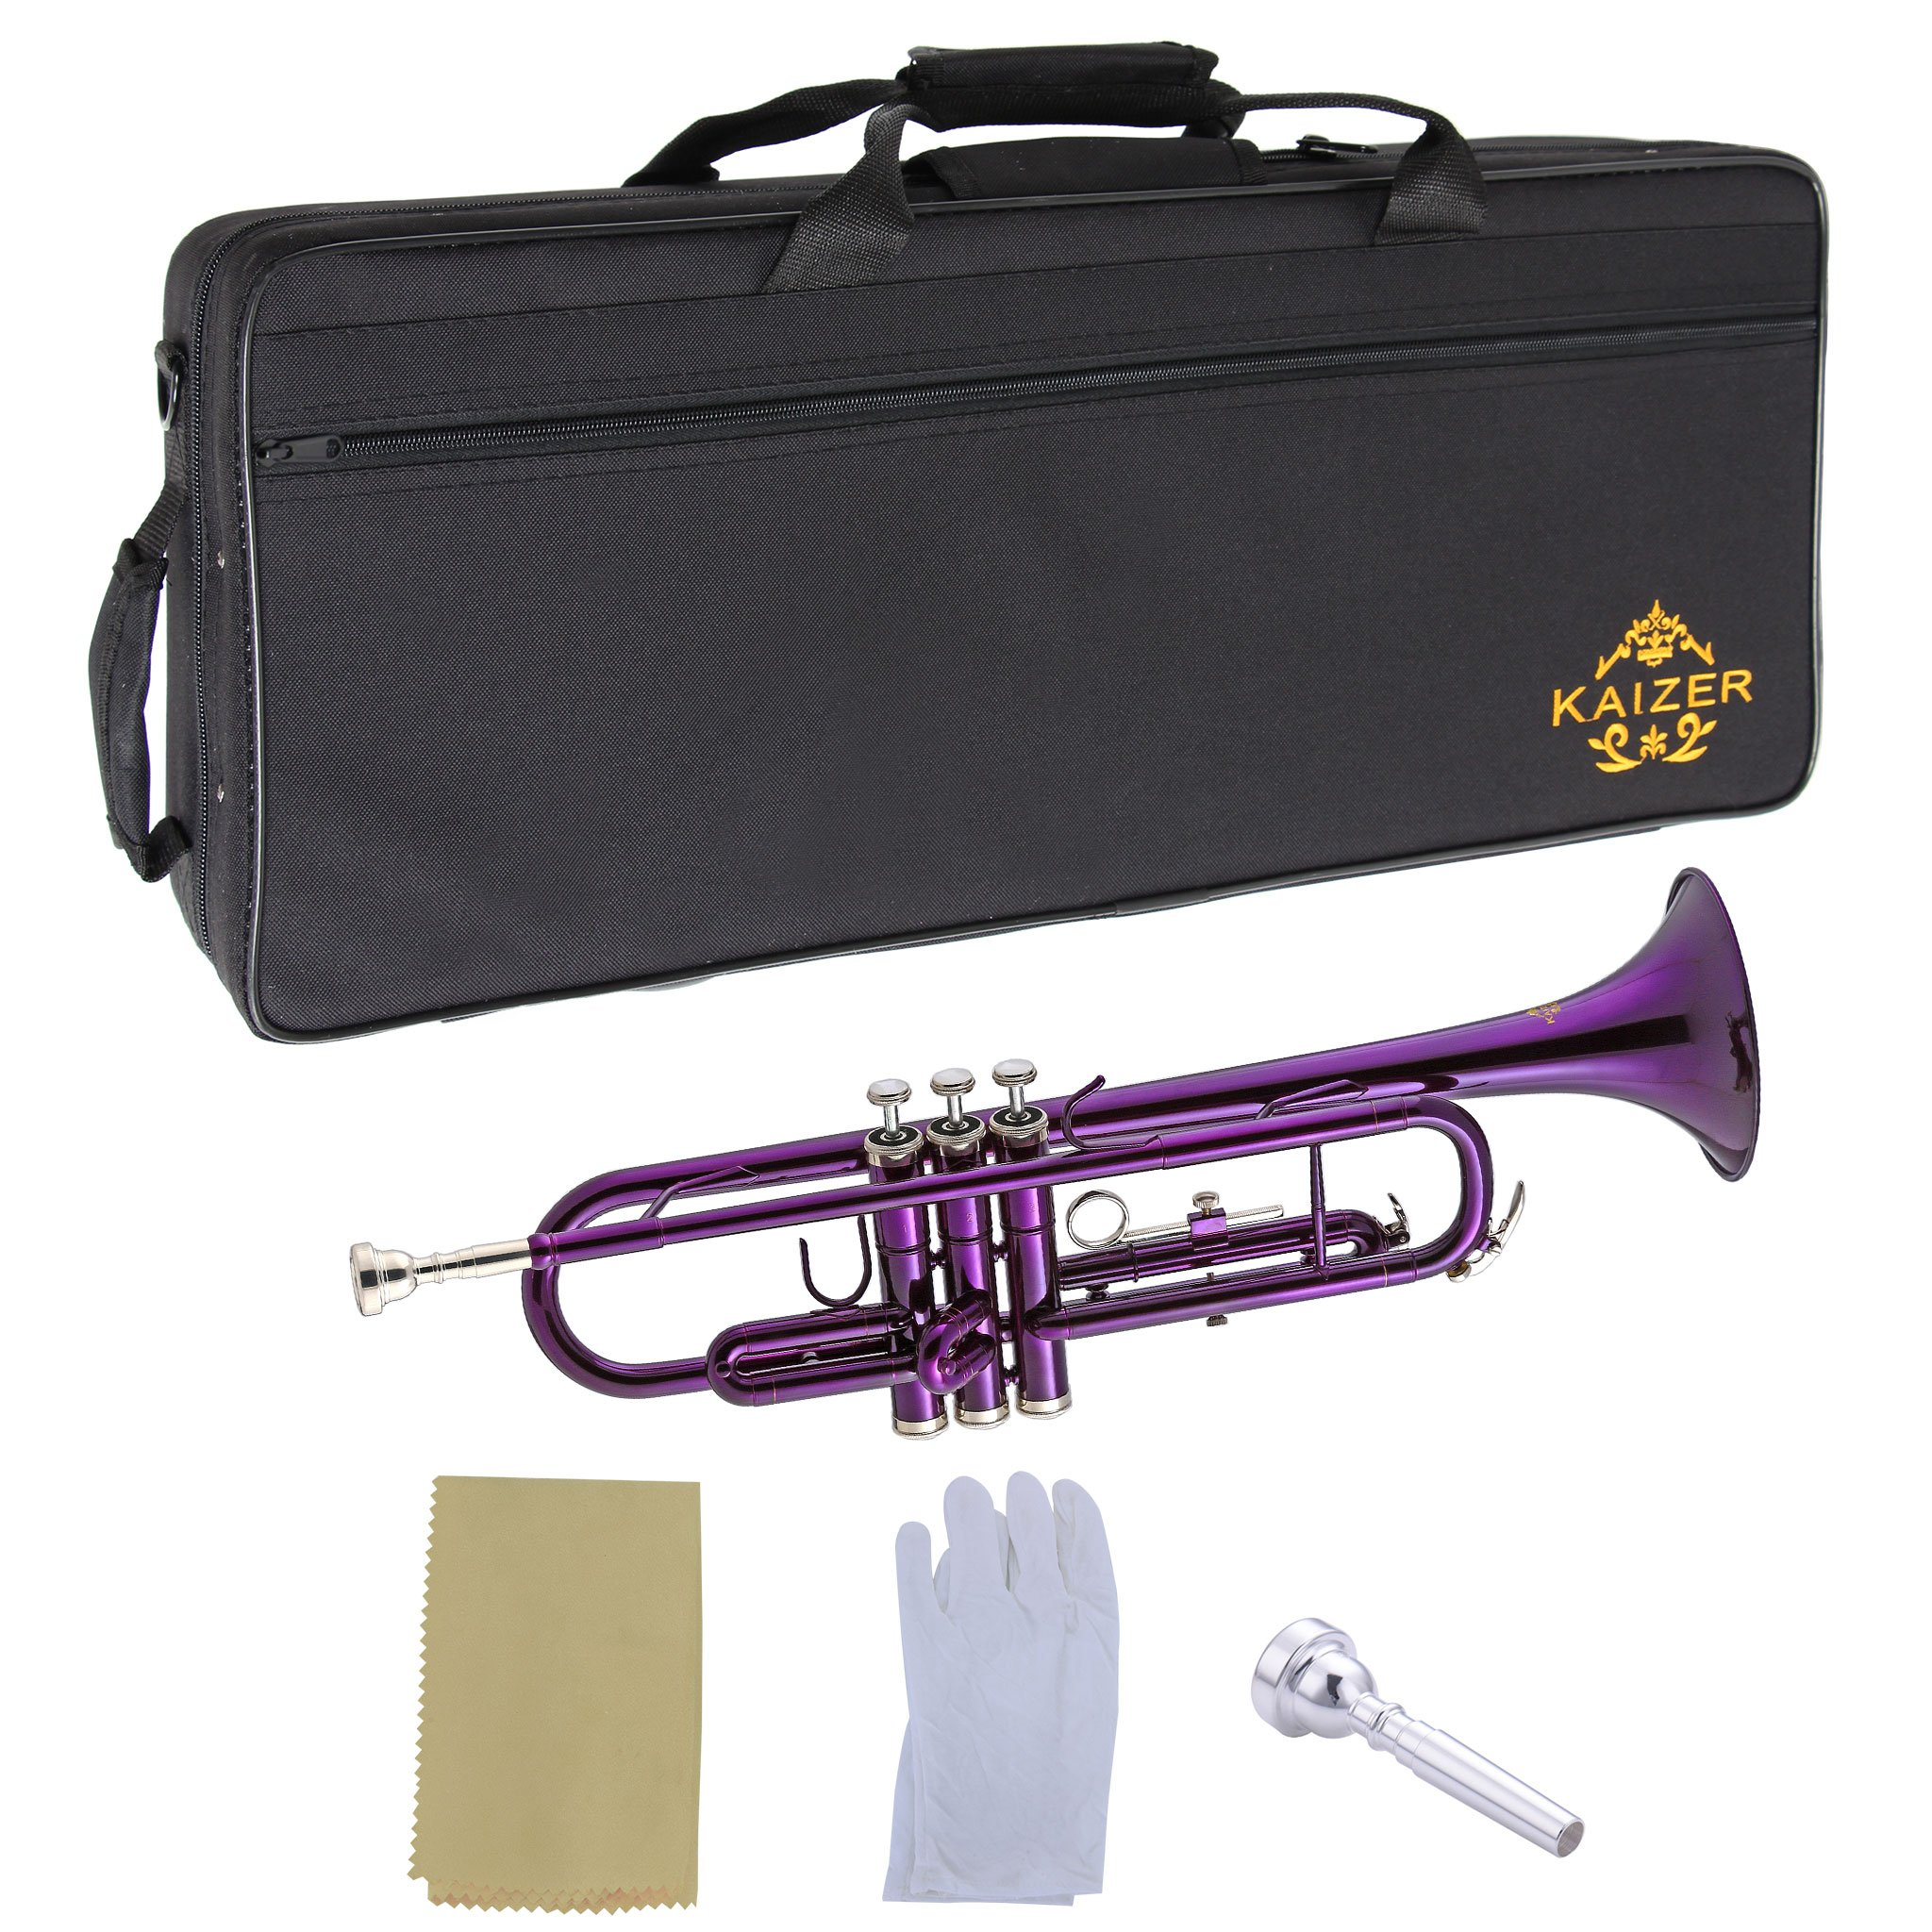 Kaizer Trumpet Bb B Flat Purple Includes Case Mouthpiece and Accessories TRP-1000PL